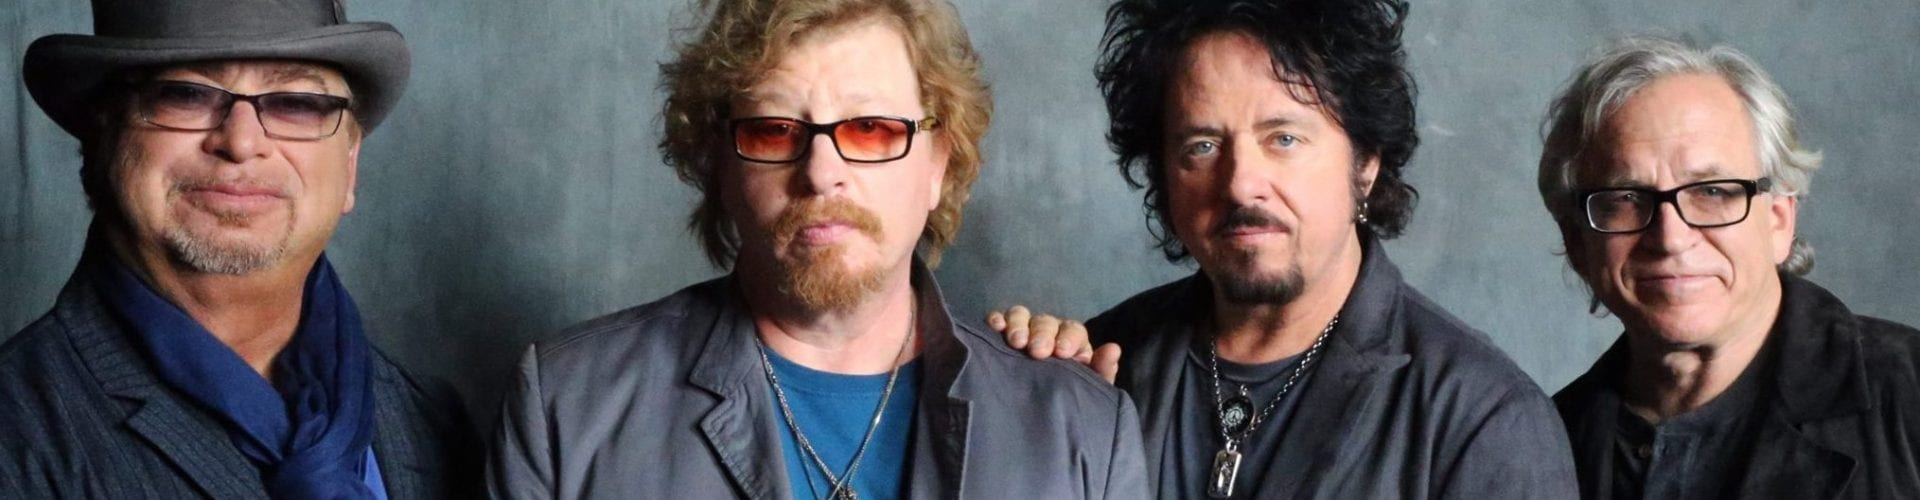 Toto Will Wrap-Up '40 Trips Around The Sun Tour' In North America